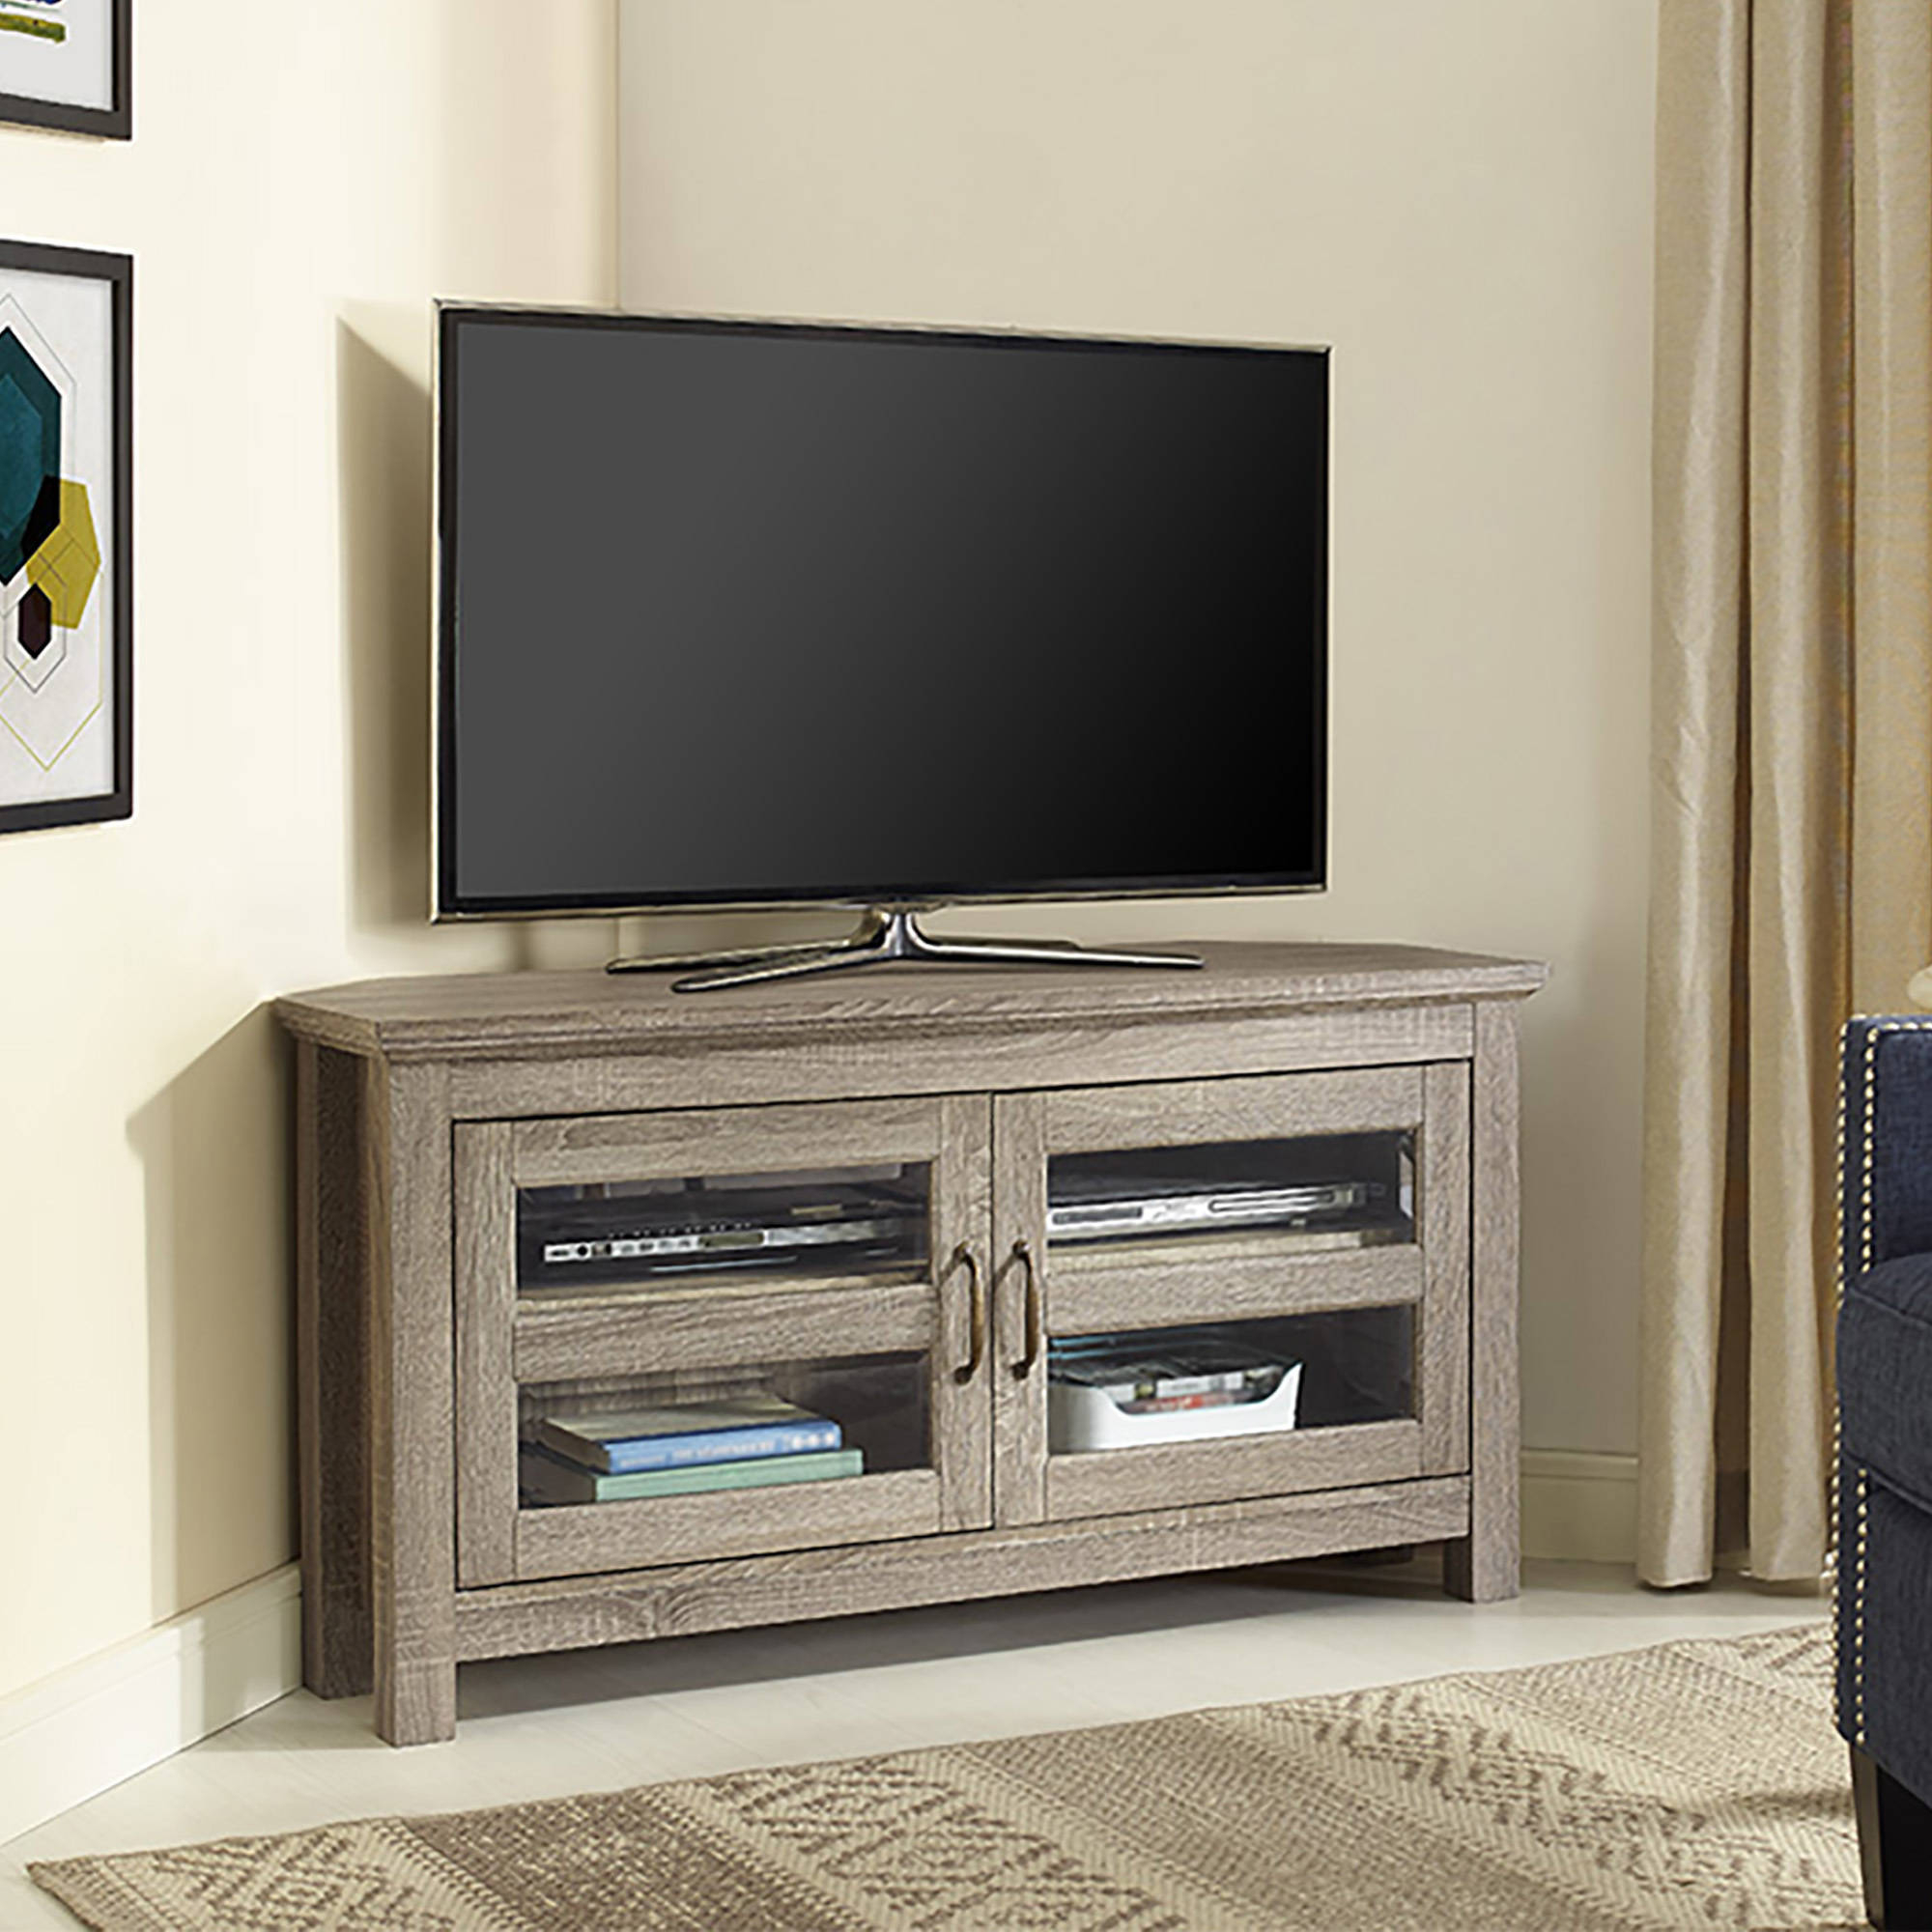 Most Current Corner Tv Stands For 46 Inch Flat Screen In Universal Tv Base Walmart We Furniture 70 Wood Stand Walker Edison (View 13 of 20)